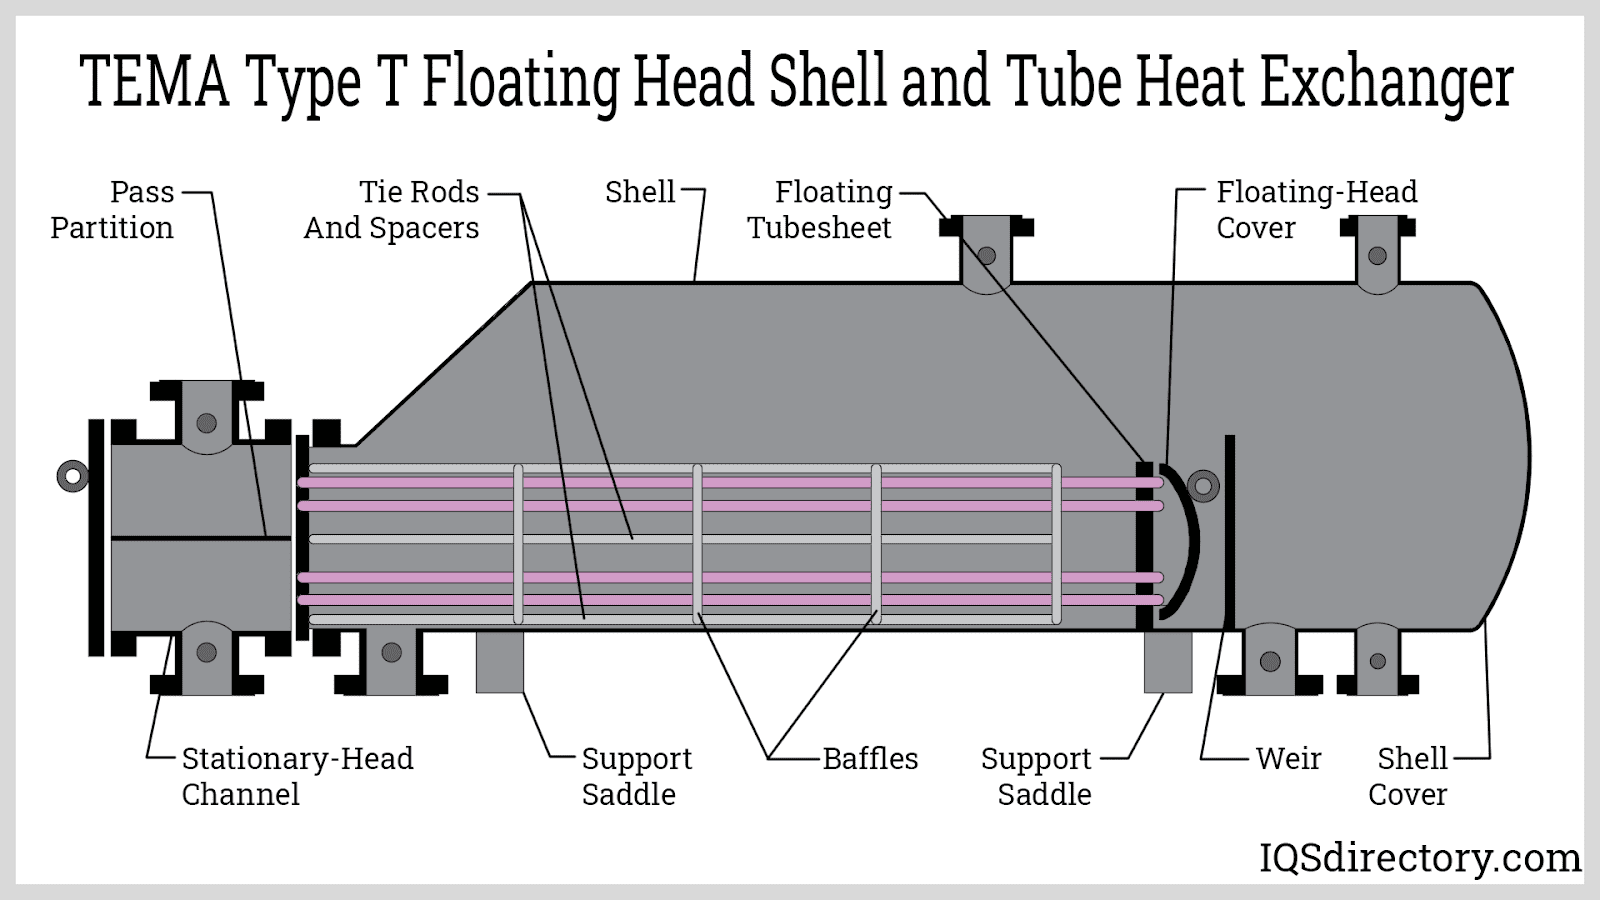 TEMA T Type Floating Head Shell and Tube Heat Exchanger